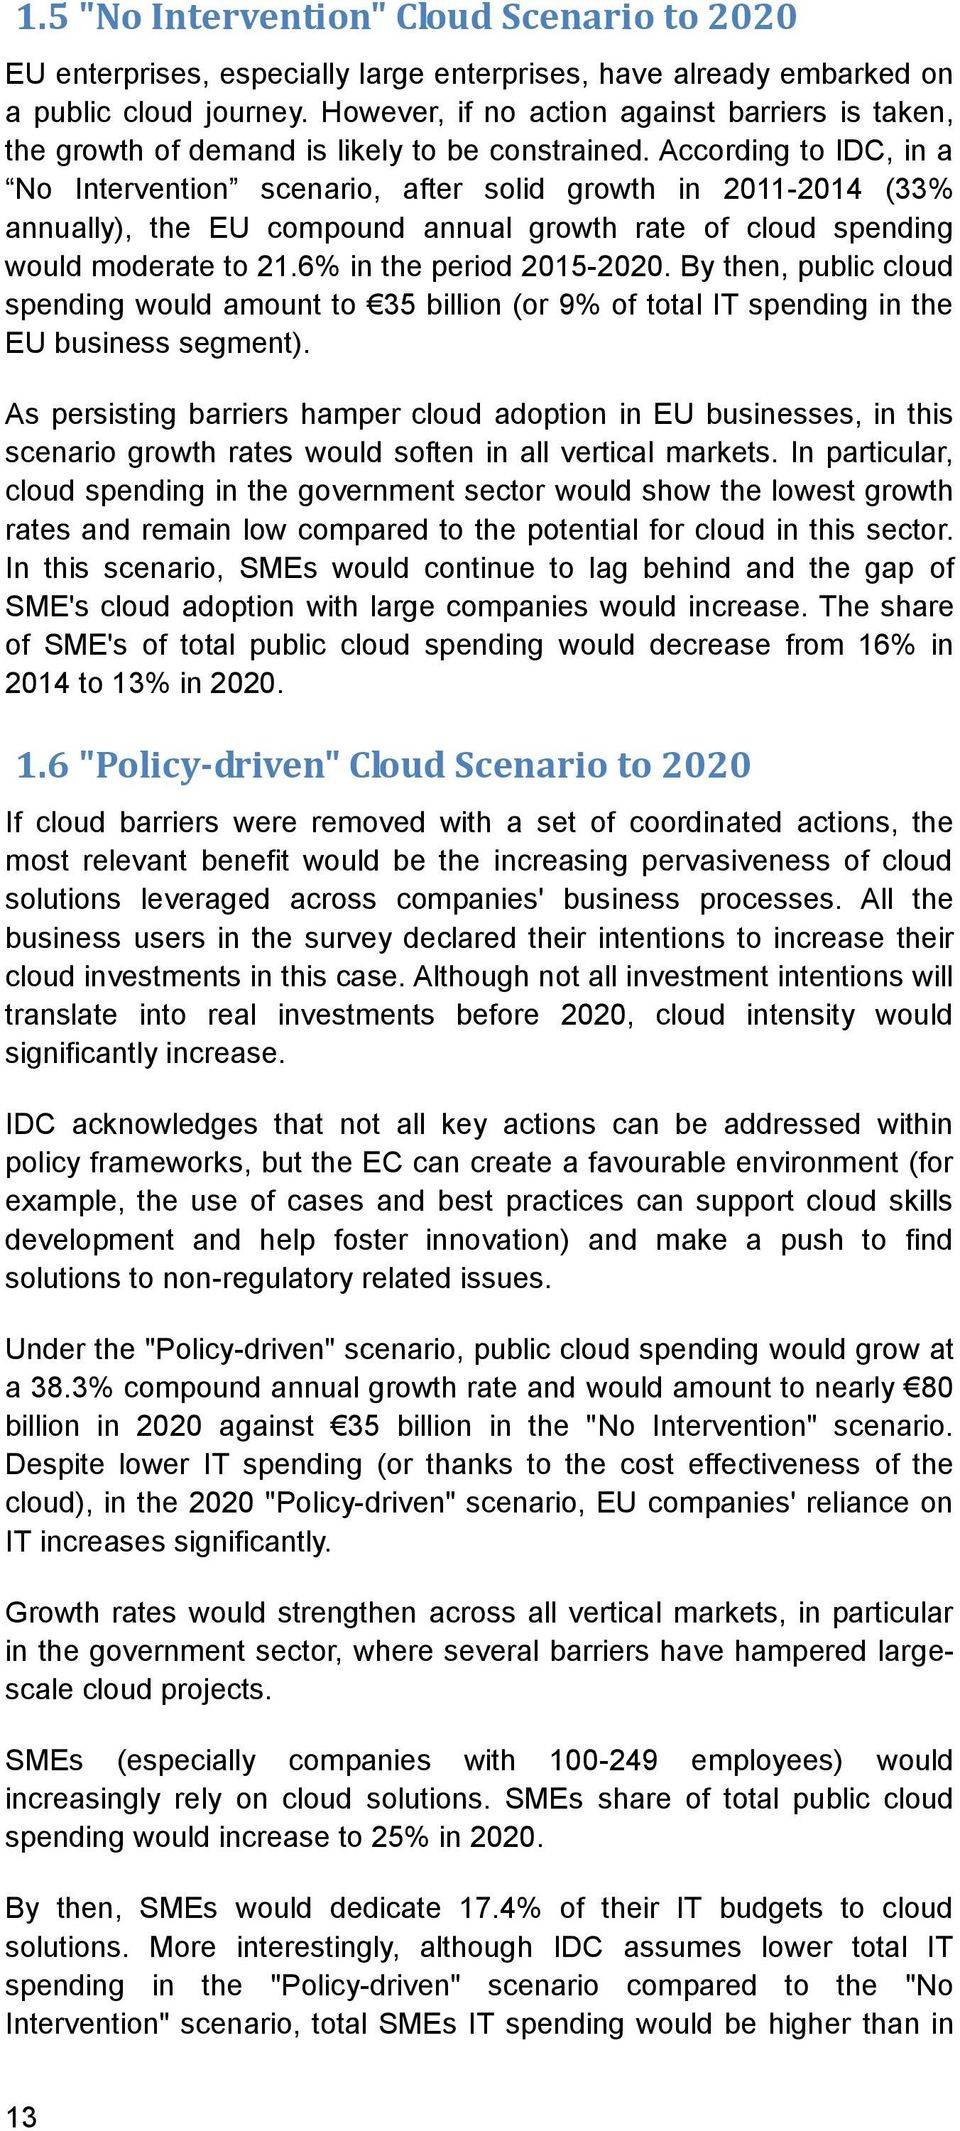 According to IDC, in a No Intervention scenario, after solid growth in 2011-2014 (33% annually), the EU compound annual growth rate of cloud spending would moderate to 21.6% in the period 2015-2020.